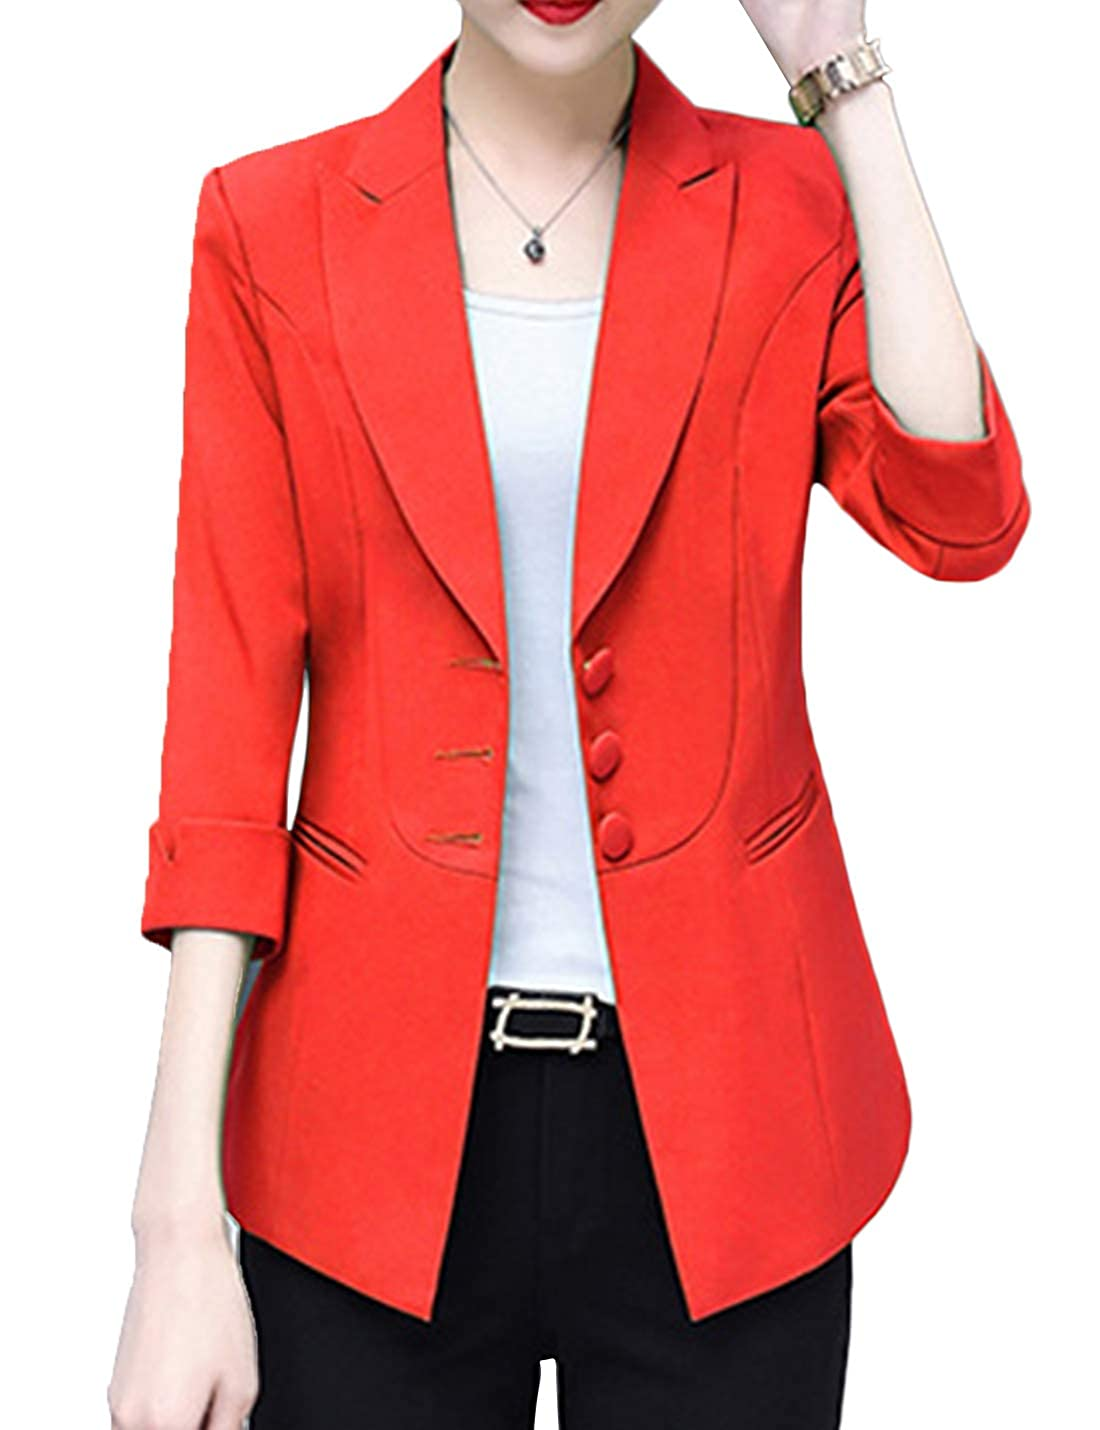 Small, Red Yeokou Womens Work Office 3//4 Sleeve Button Down Solid Suit Jacket Blazer